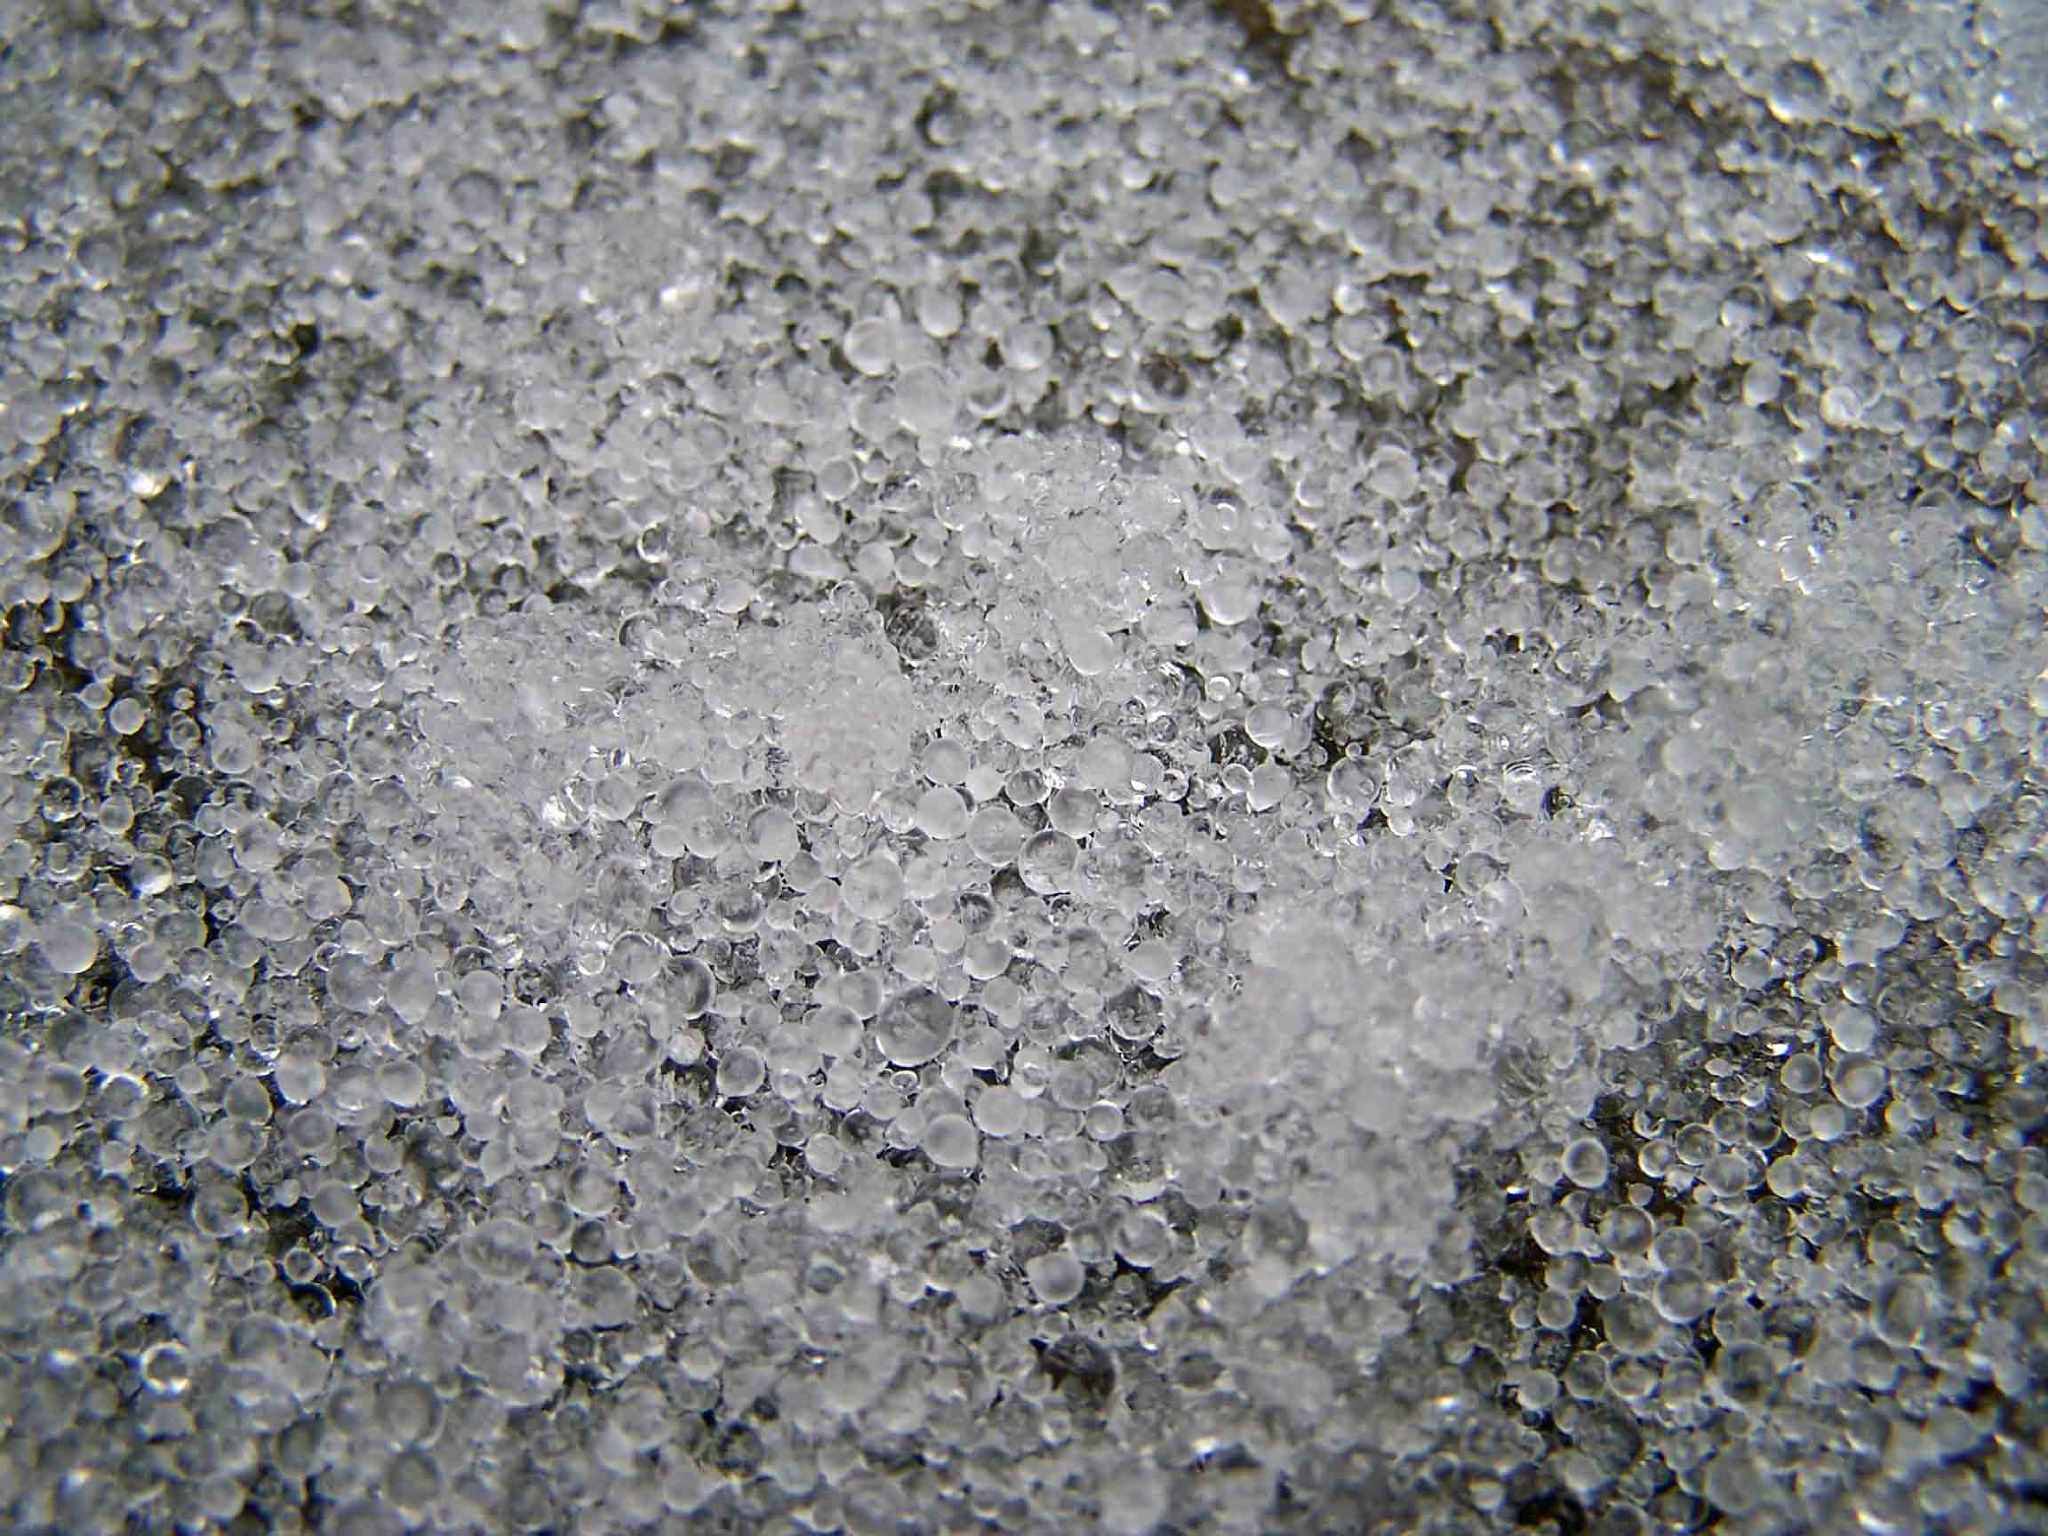 Americans call this sleet, but most everyone else call it ice pellets.